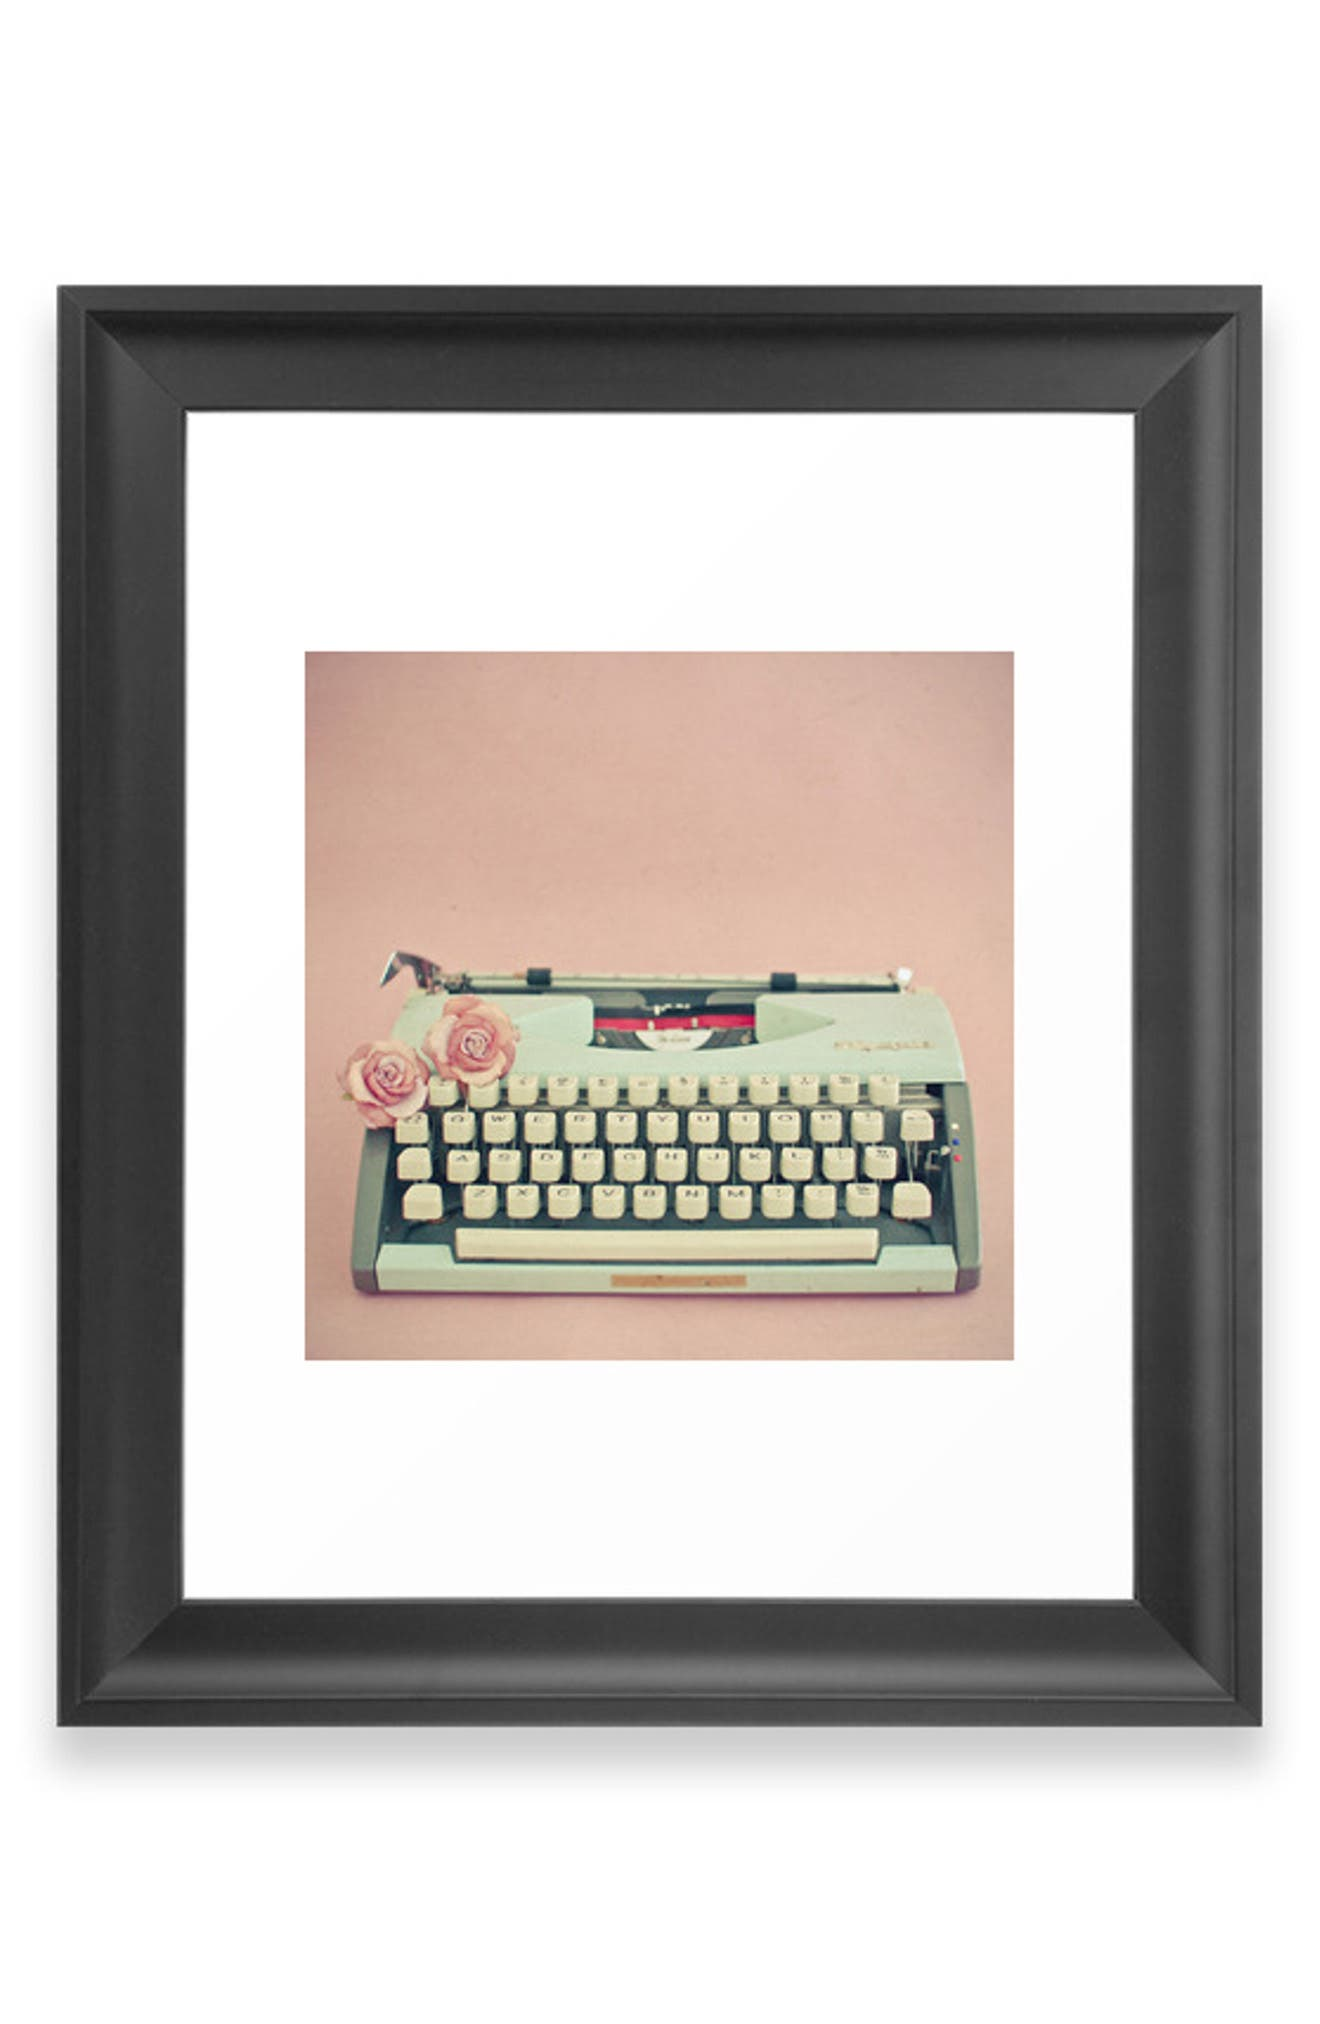 Bring a sweet message of love to your space with this satin-finish art print available on its own or in a ready-to-hang frame. Style Name: Deny Designs Love Letter Art Print. Style Number: 5867301. Available in stores.